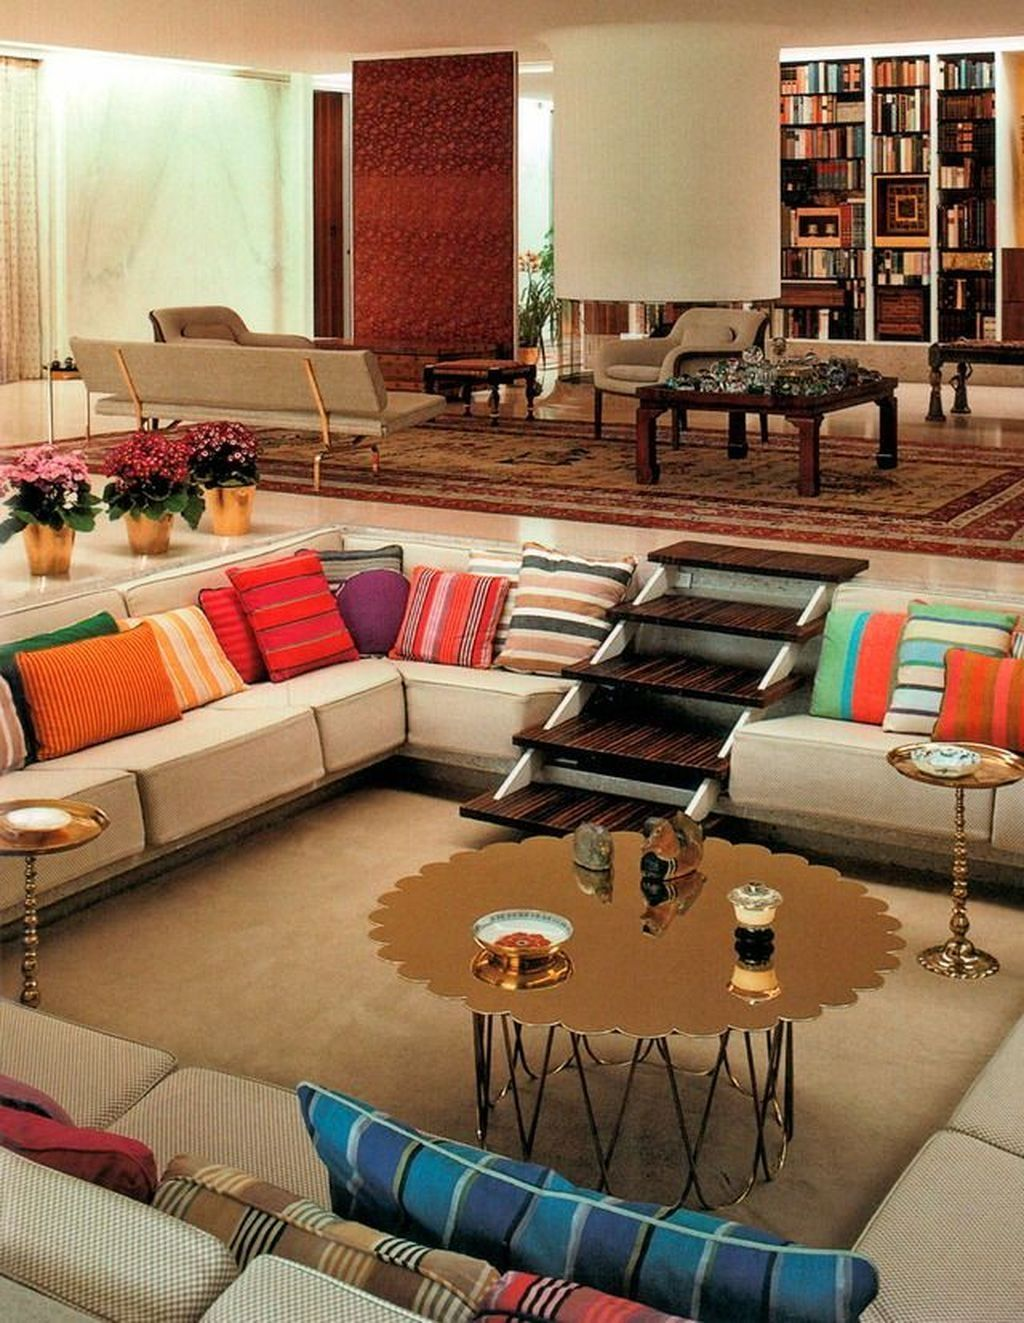 50 Modern Living Room Design Ideas: 50 Pretty Sunken Living Room Design Ideas